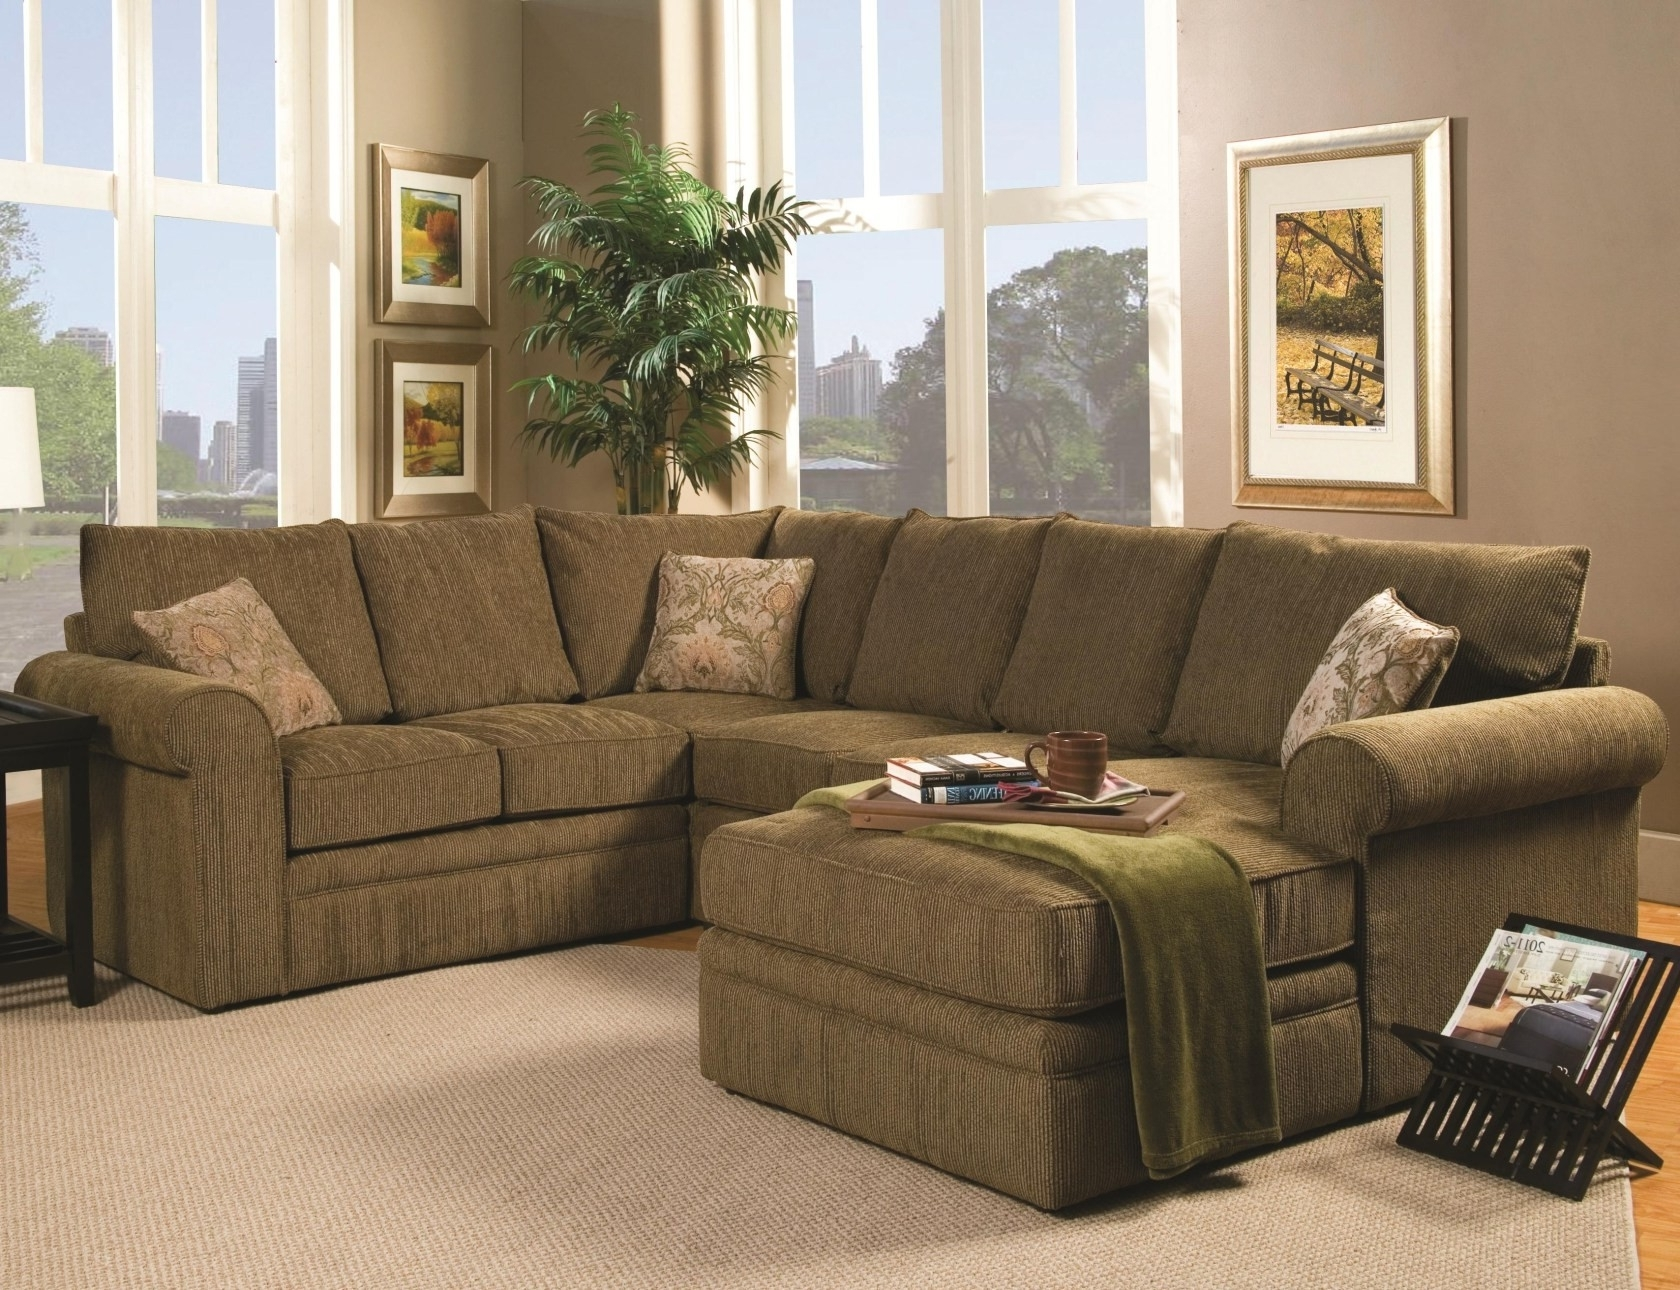 Fashionable U Shaped Leather Sectional Sofas In Perfect U Shaped Sectional Sofa 77 With Additional Living Room (Gallery 15 of 20)